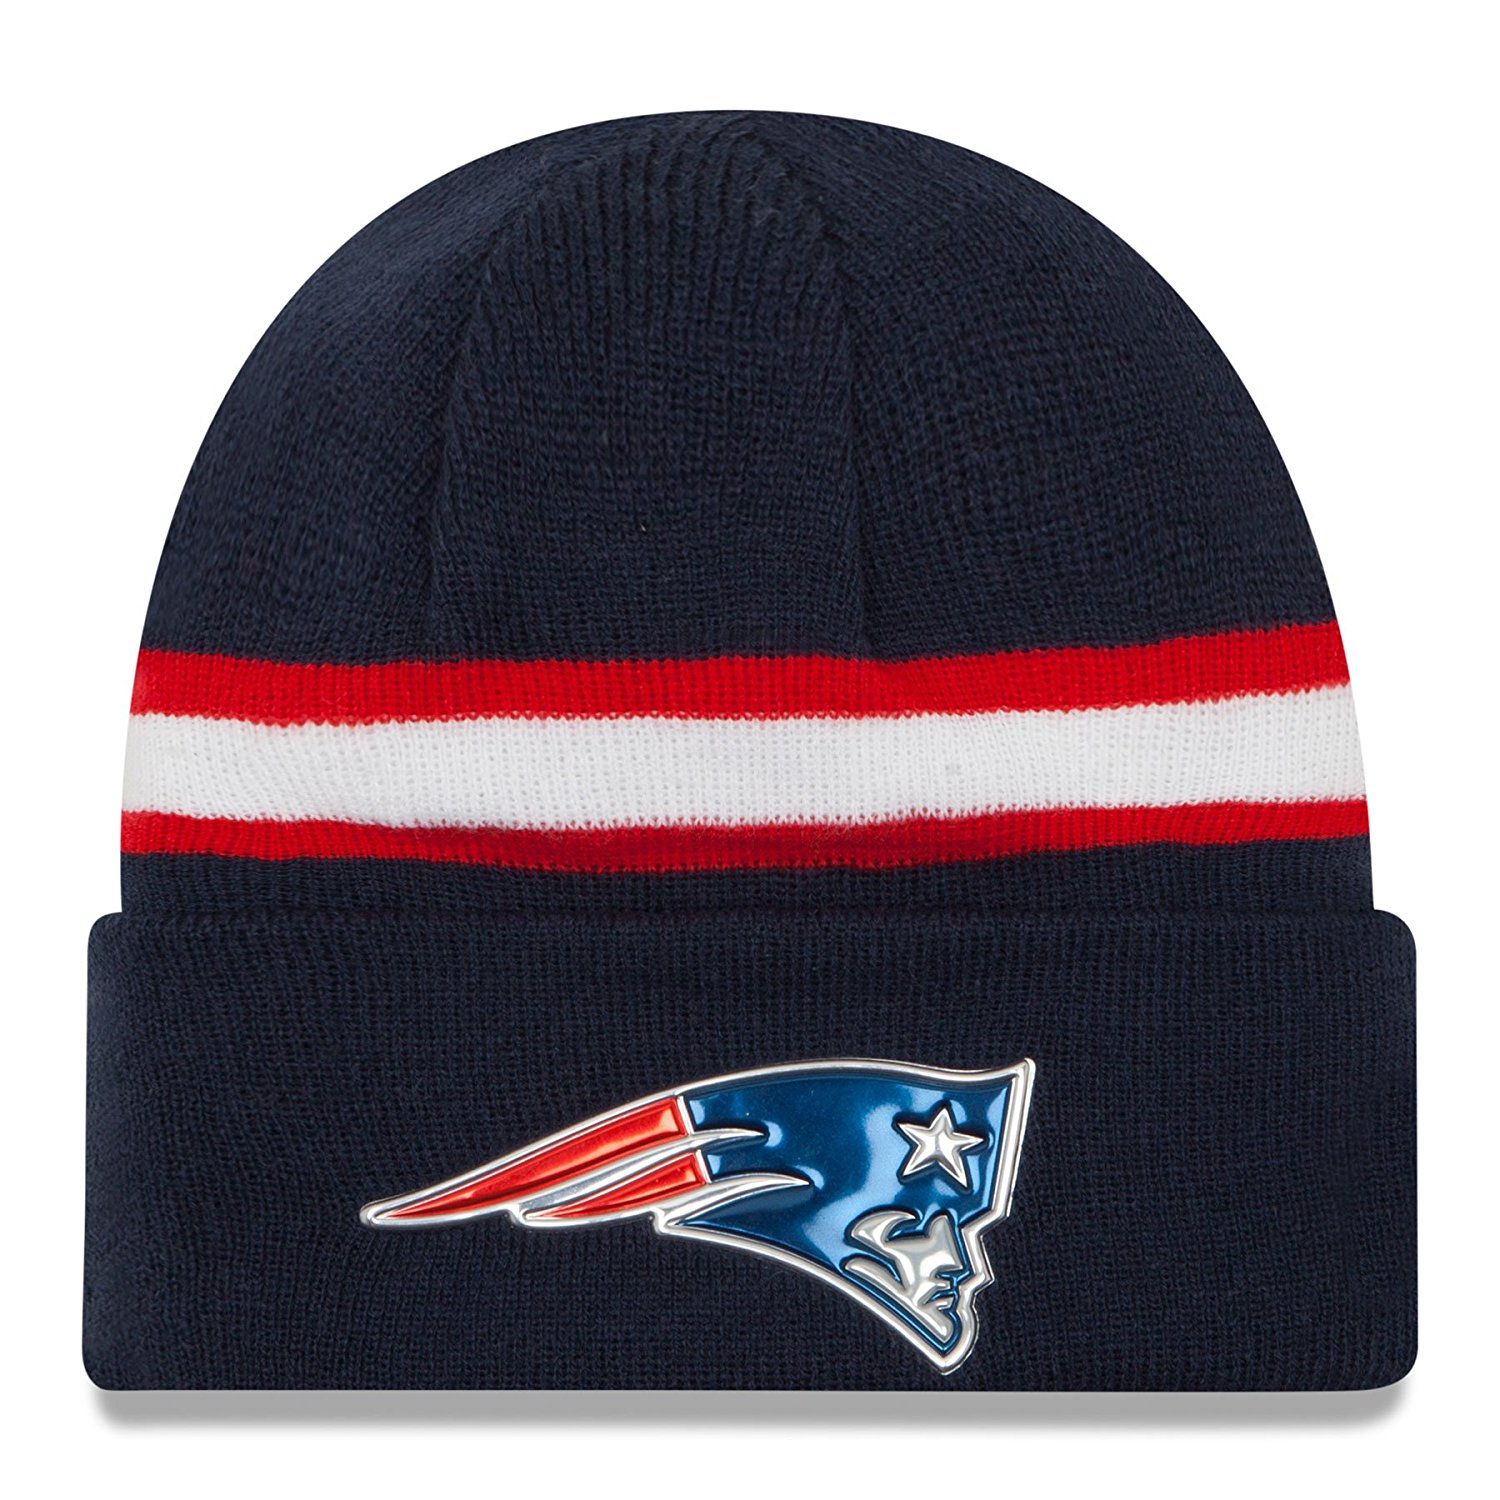 Get Quotations · New England Patriots 2016 NFL On Field Color Rush Cuff  Knit Beanie (Navy) e186c5896c64